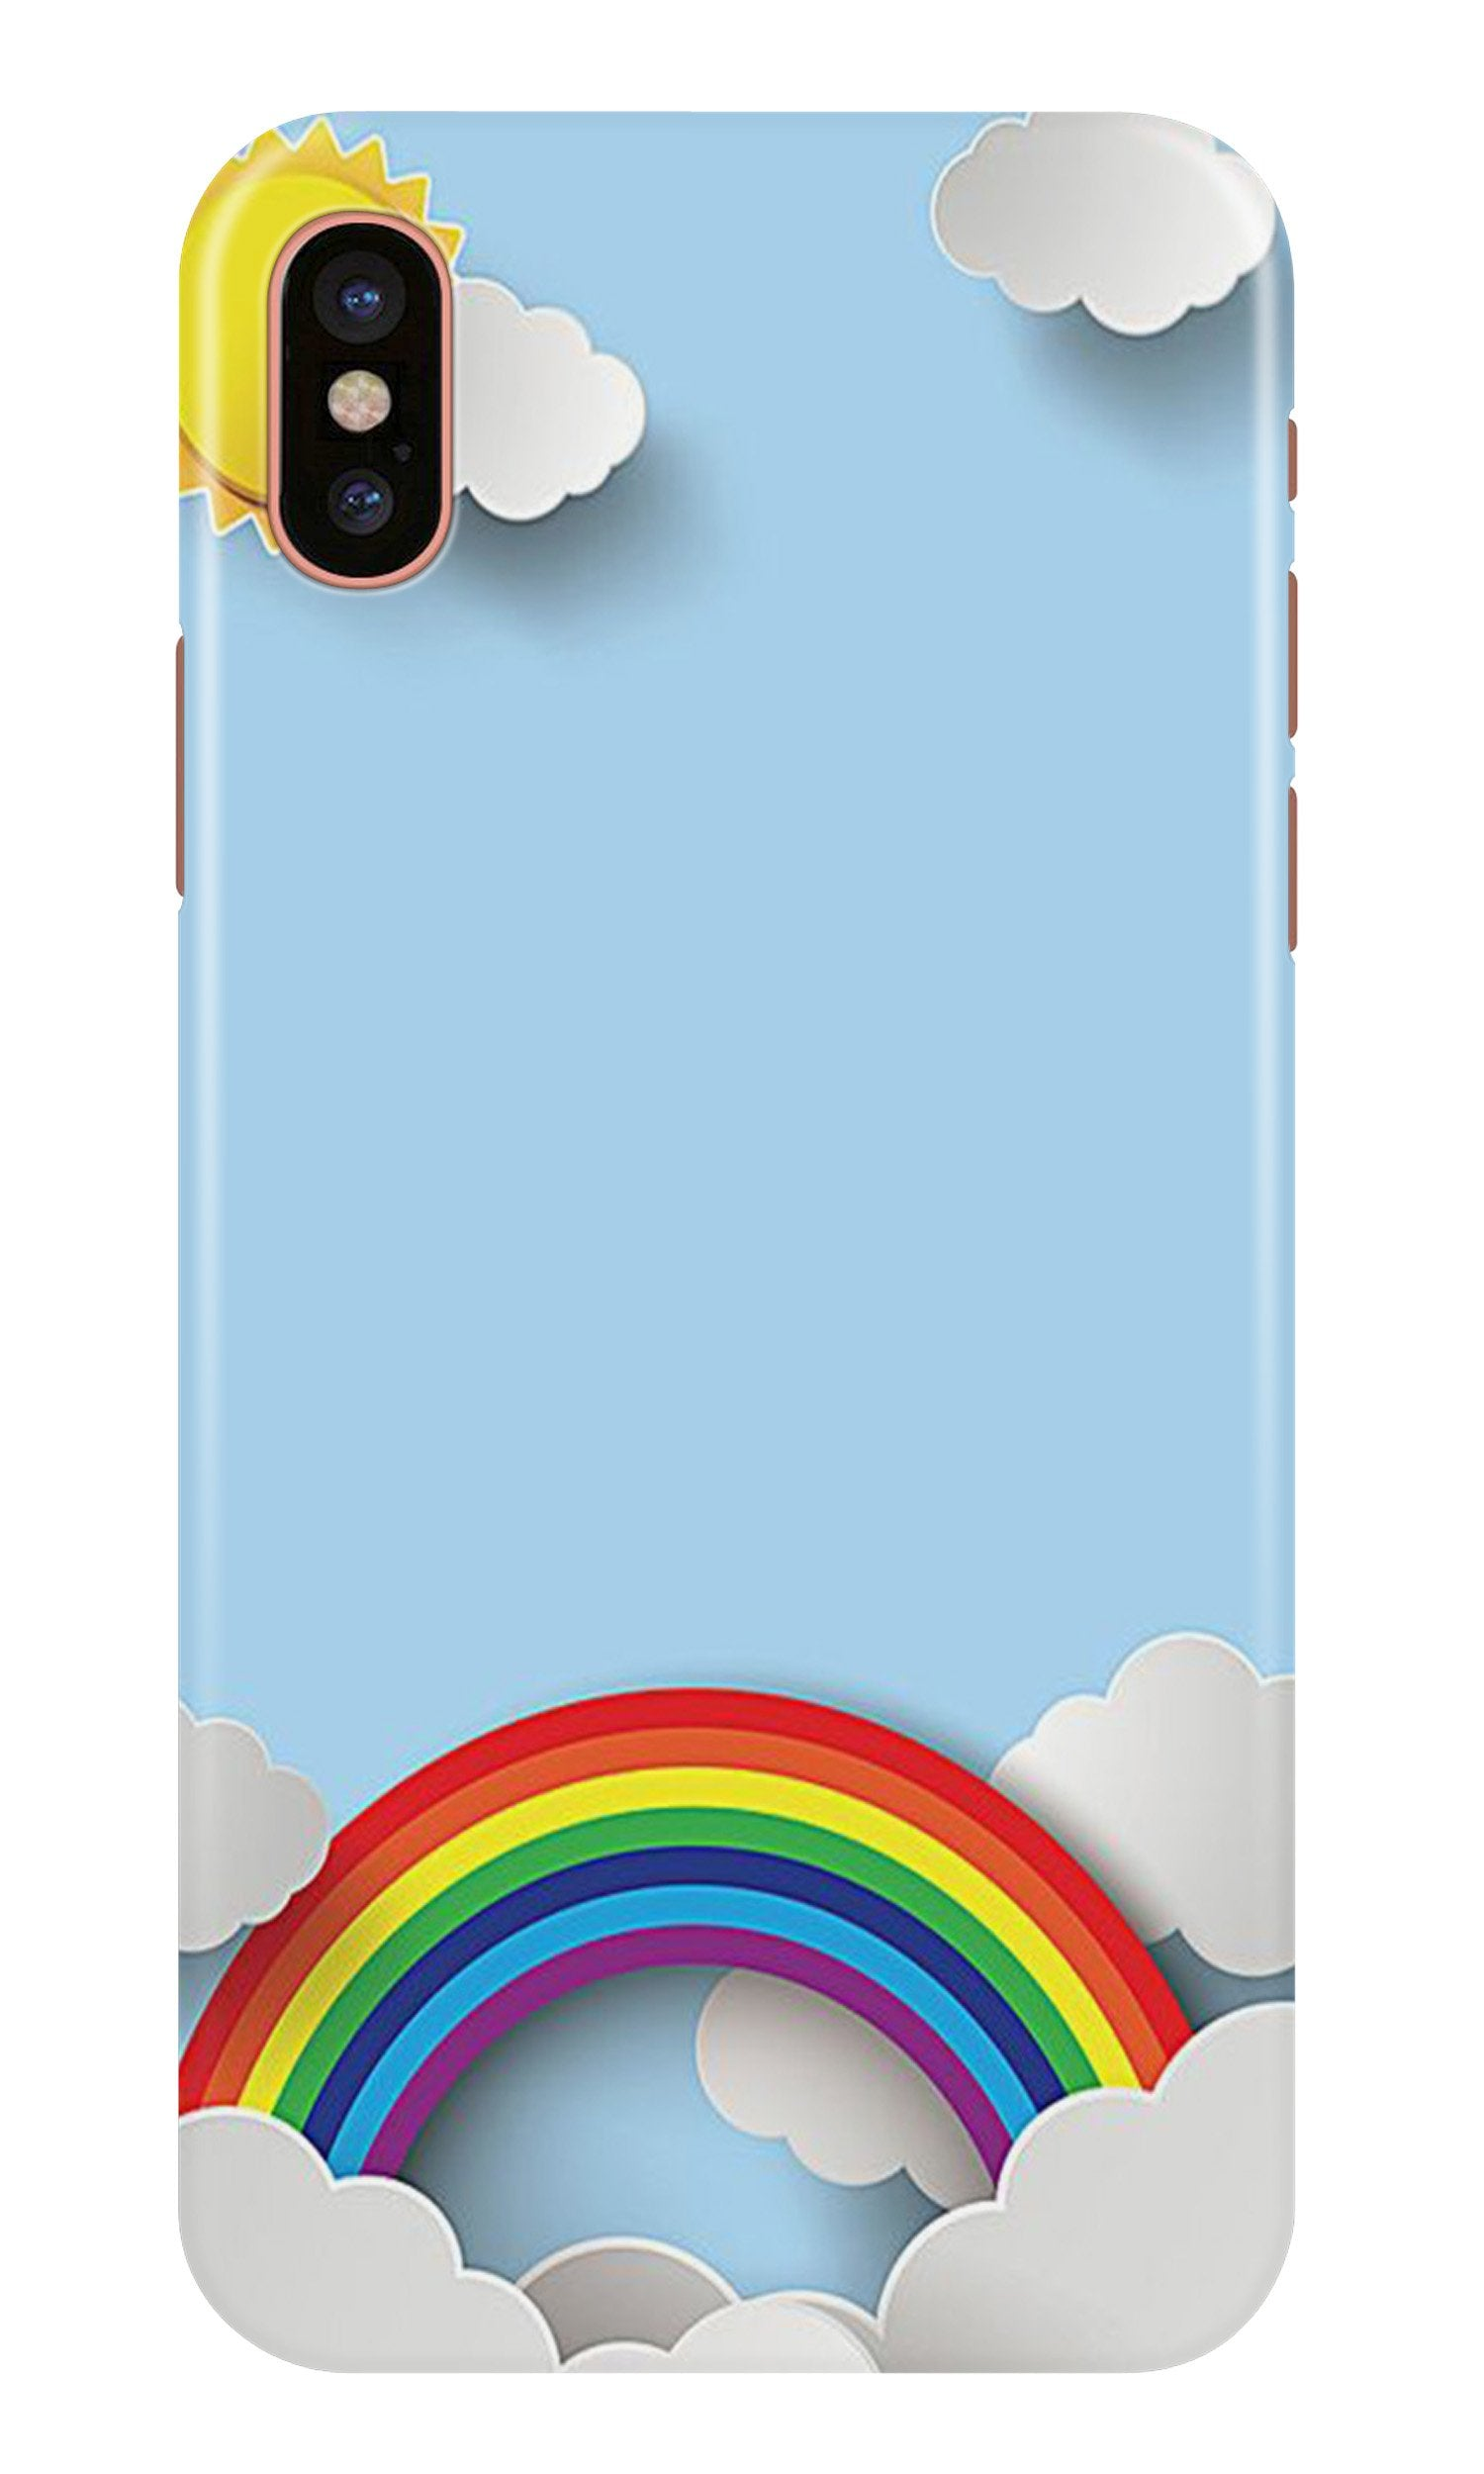 Rainbow Case for iPhone Xr (Design No. 225)